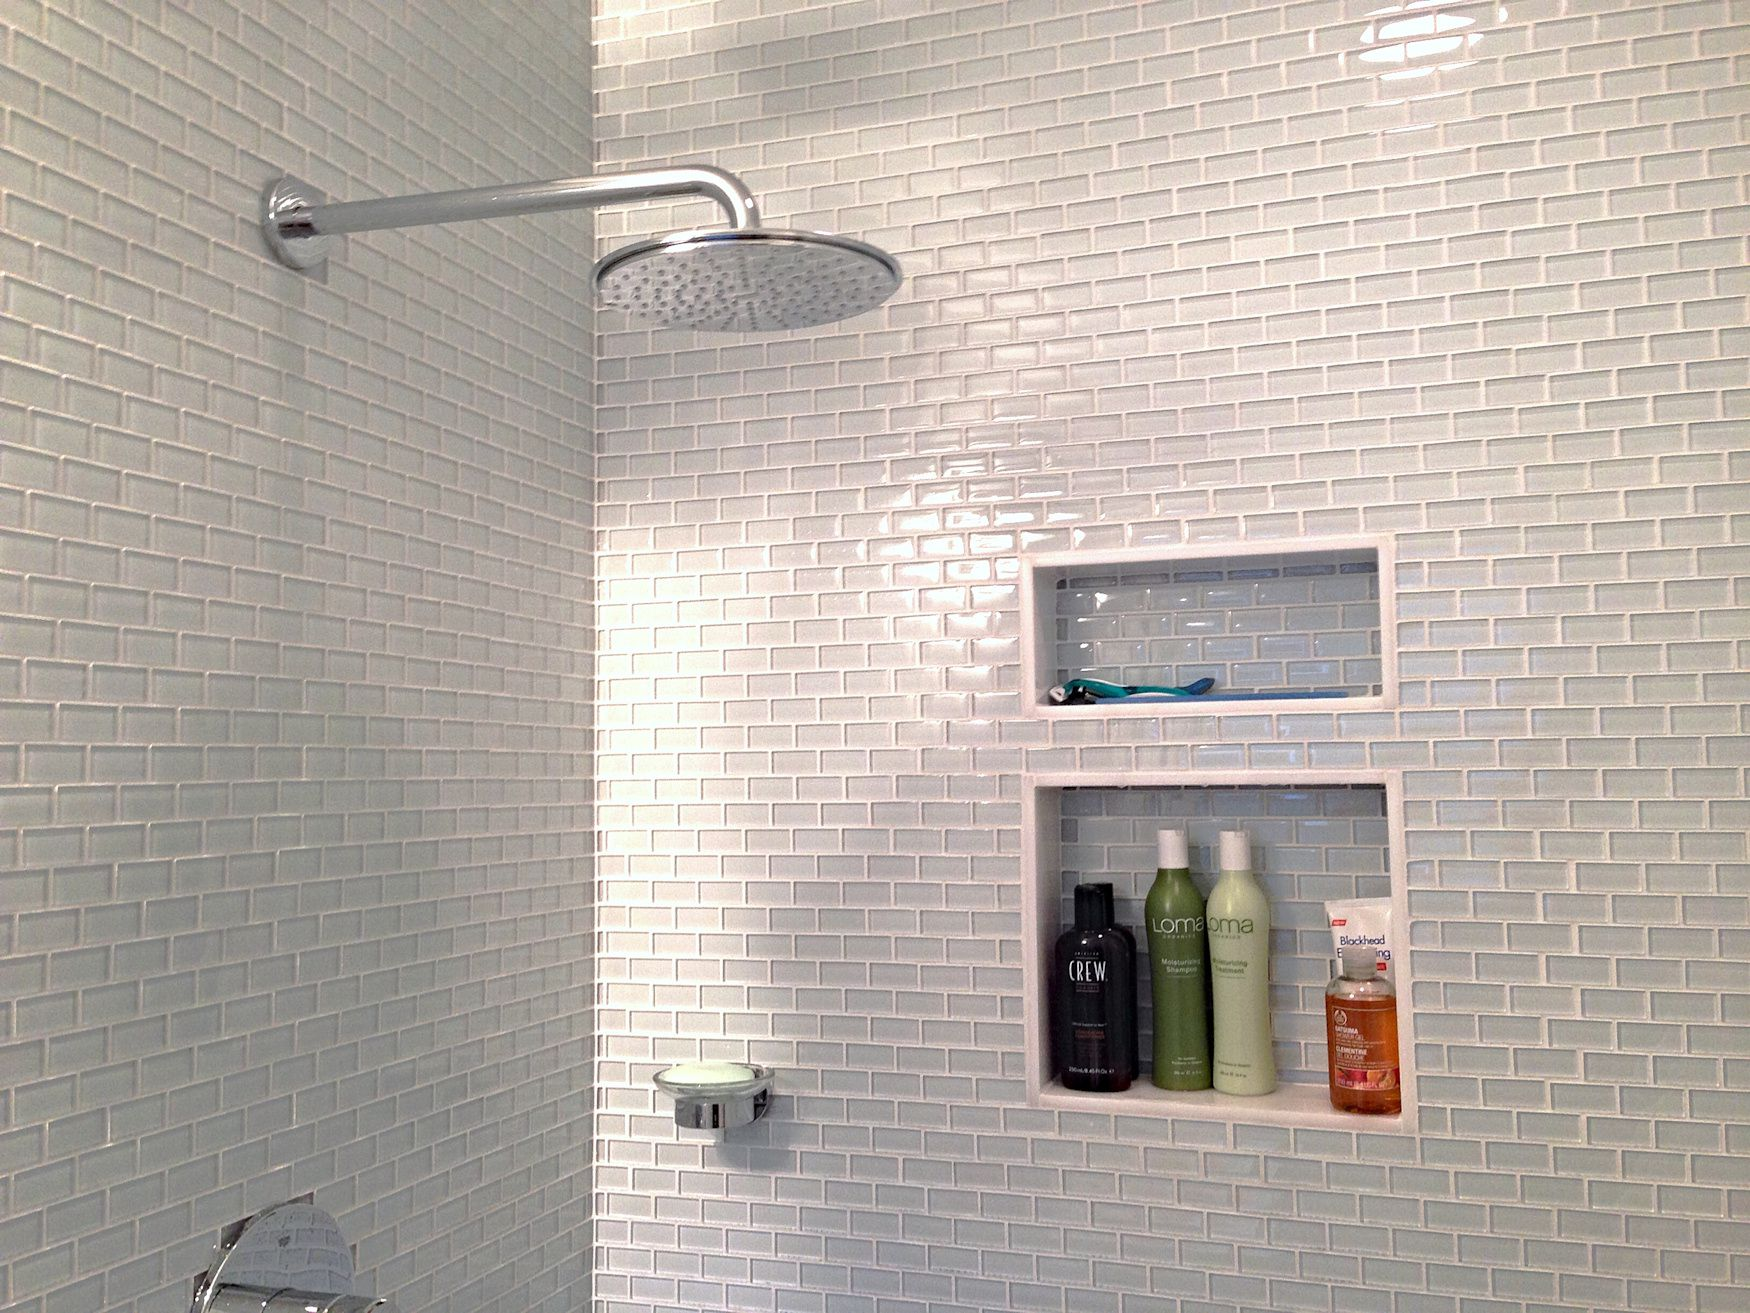 Enchanting Grey Subway Tile Shower For Wide Shower Space With Shower Faucet  And Planted Shelves